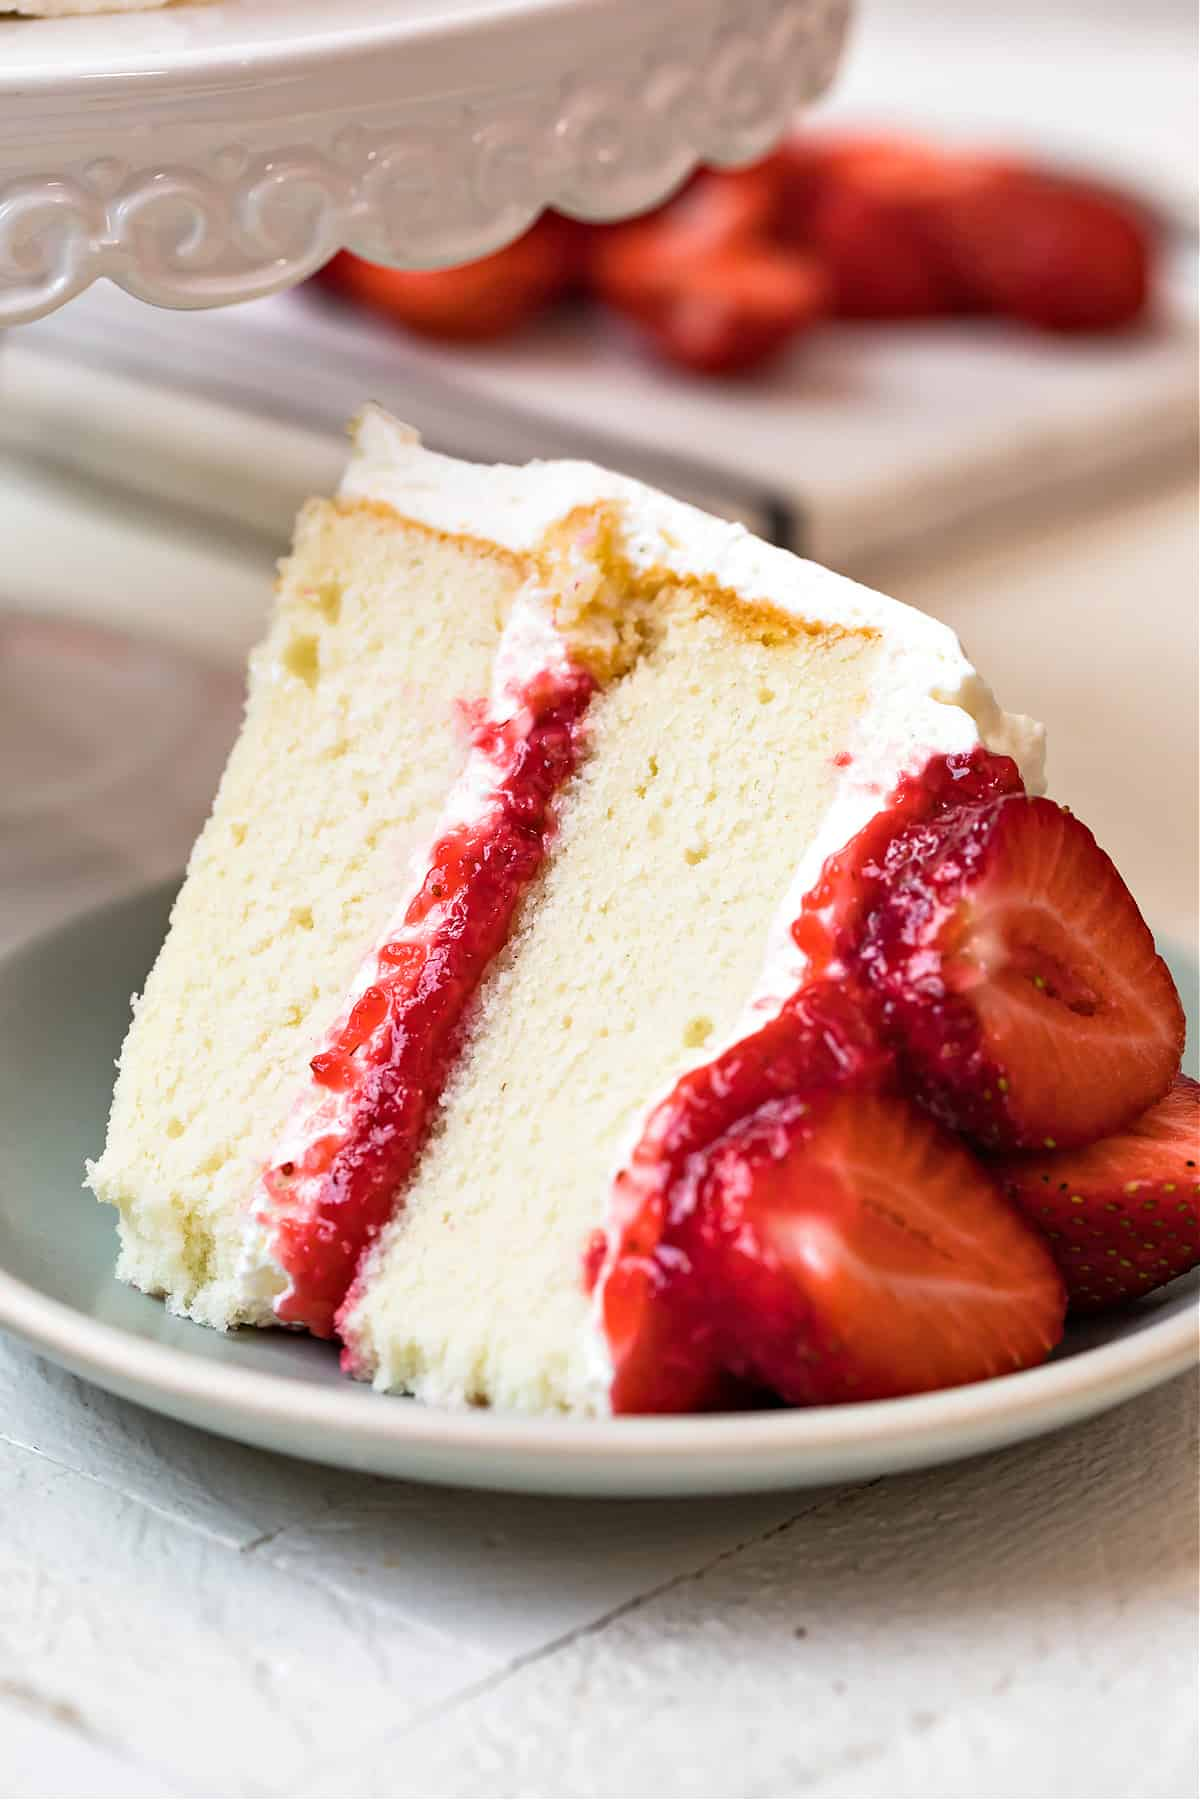 White Layer Cake with Whipped Cream Frosting and Strawberry Filling